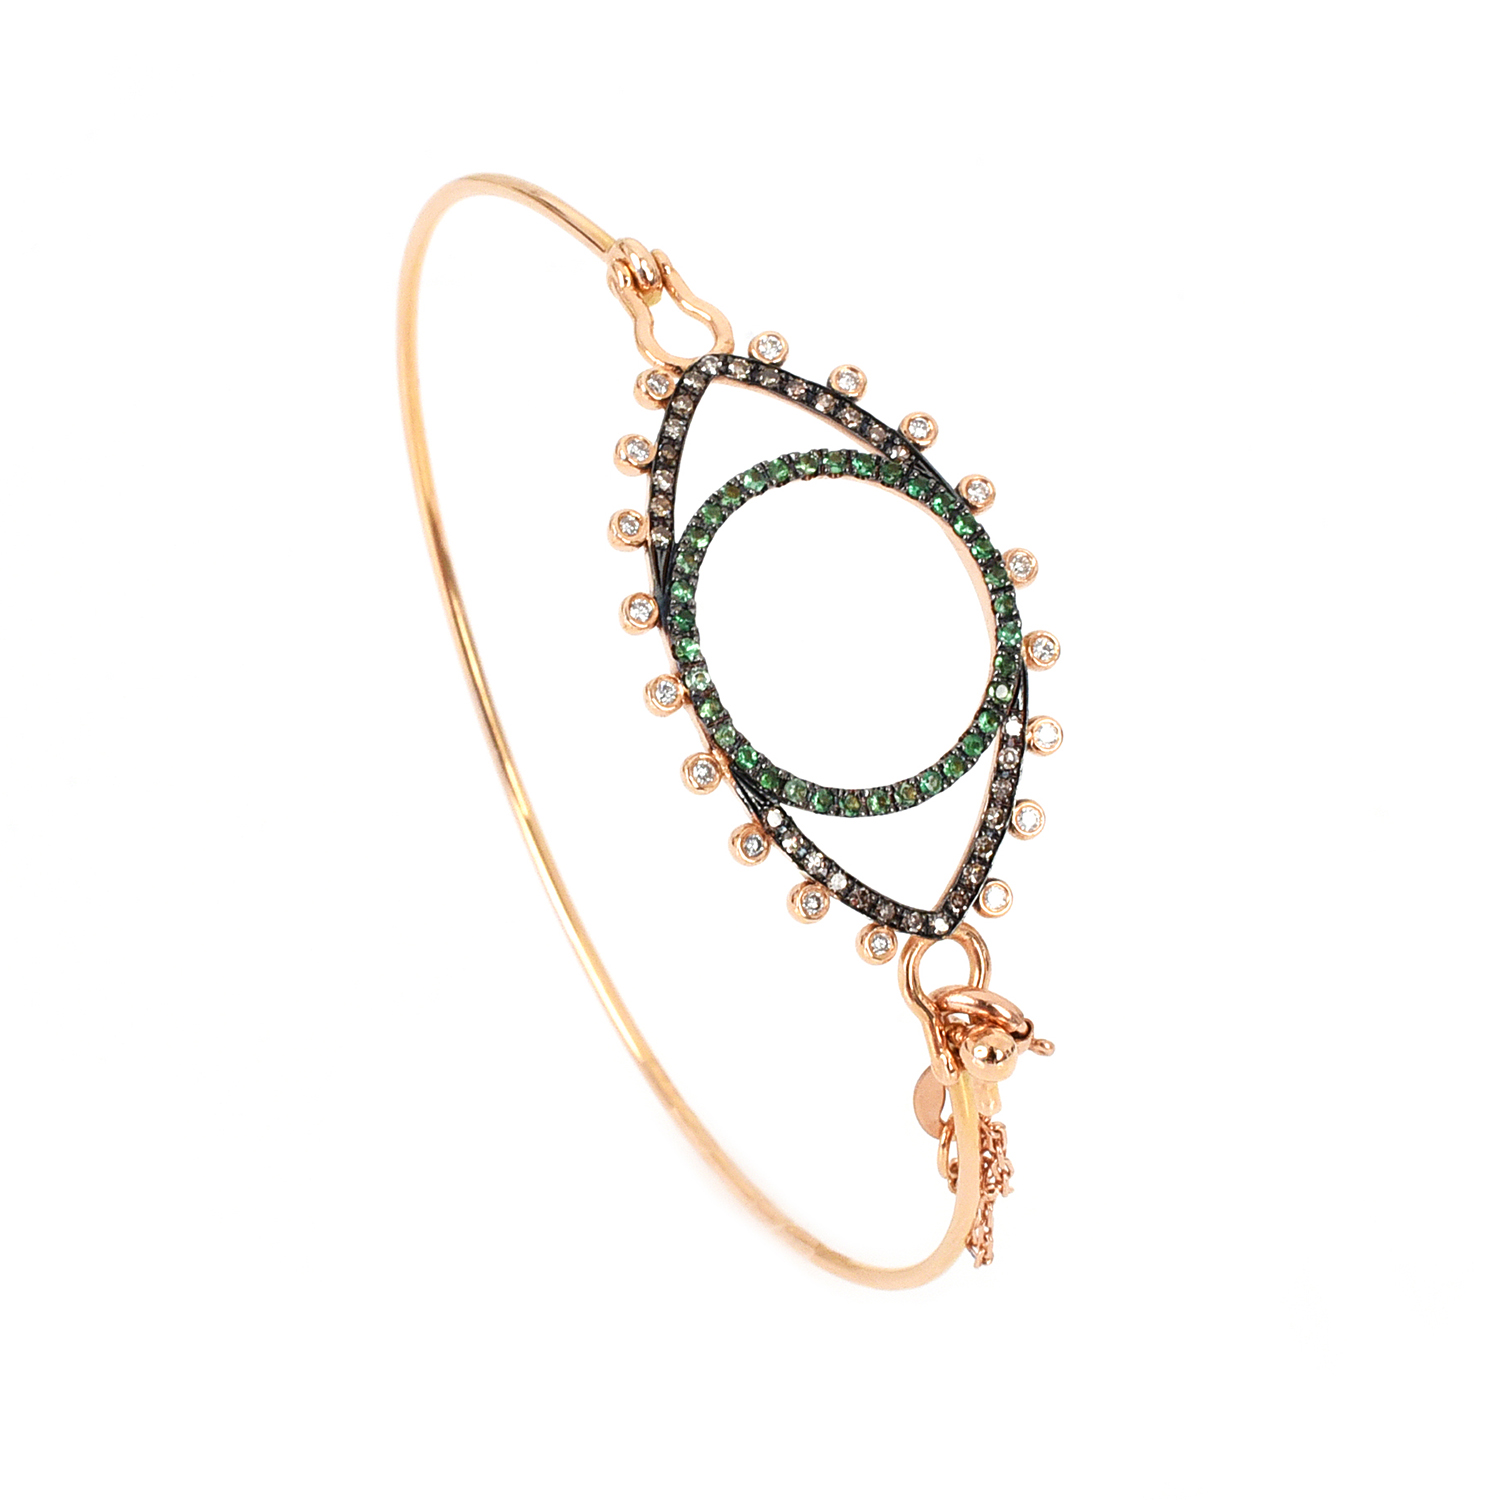 ROSE GOLD BRACELET 18-CARAT WHITE – BROWN DIAMONDS AND TSAVORITES